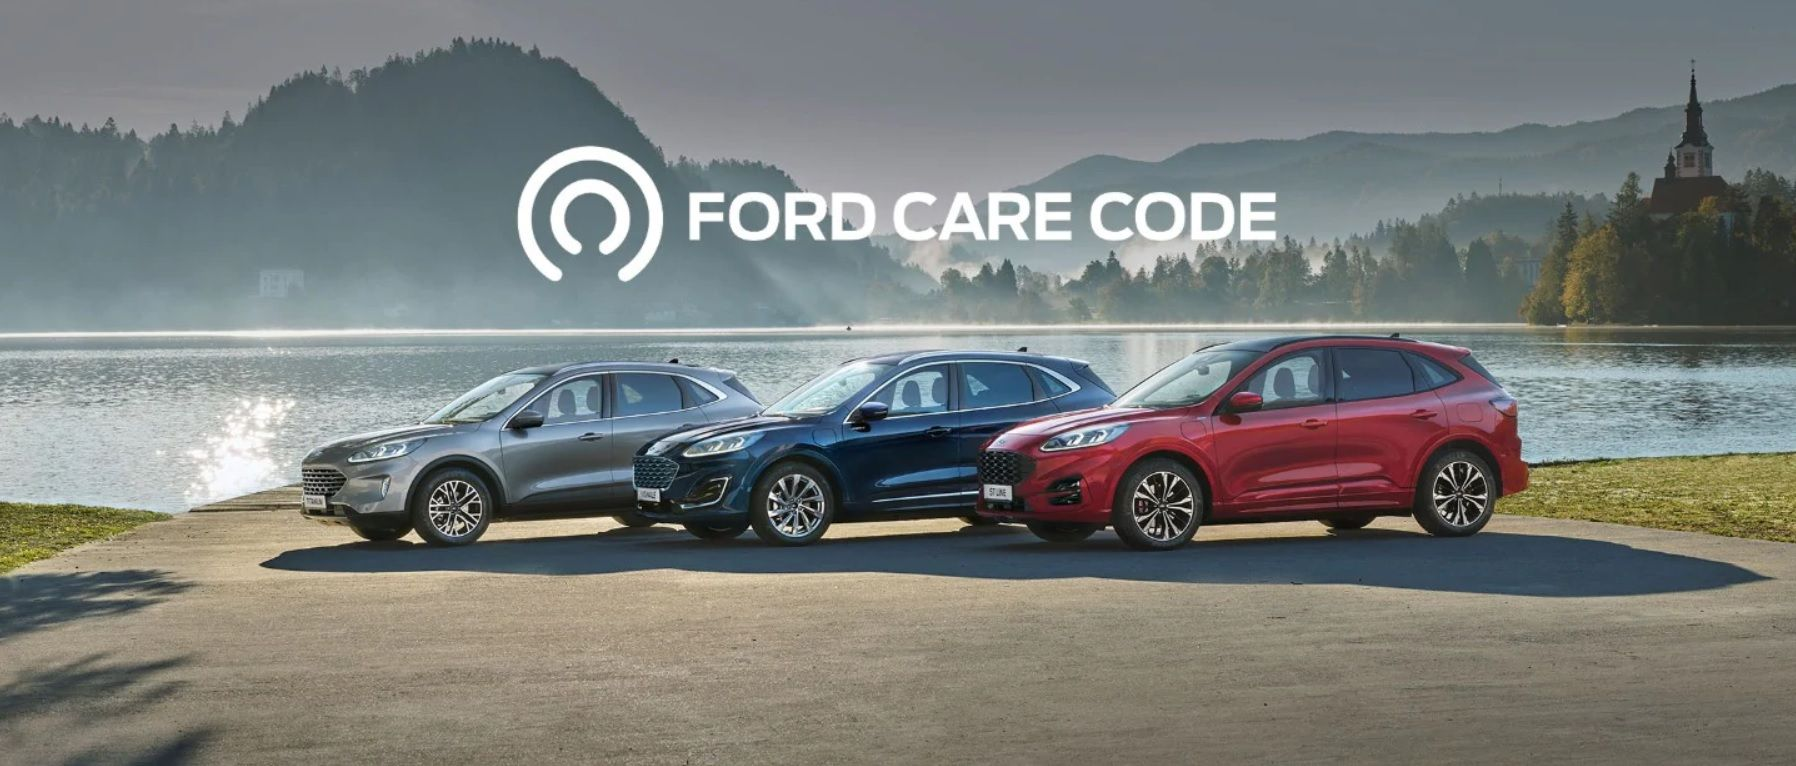 Ford Care Code At Maxwell Motors